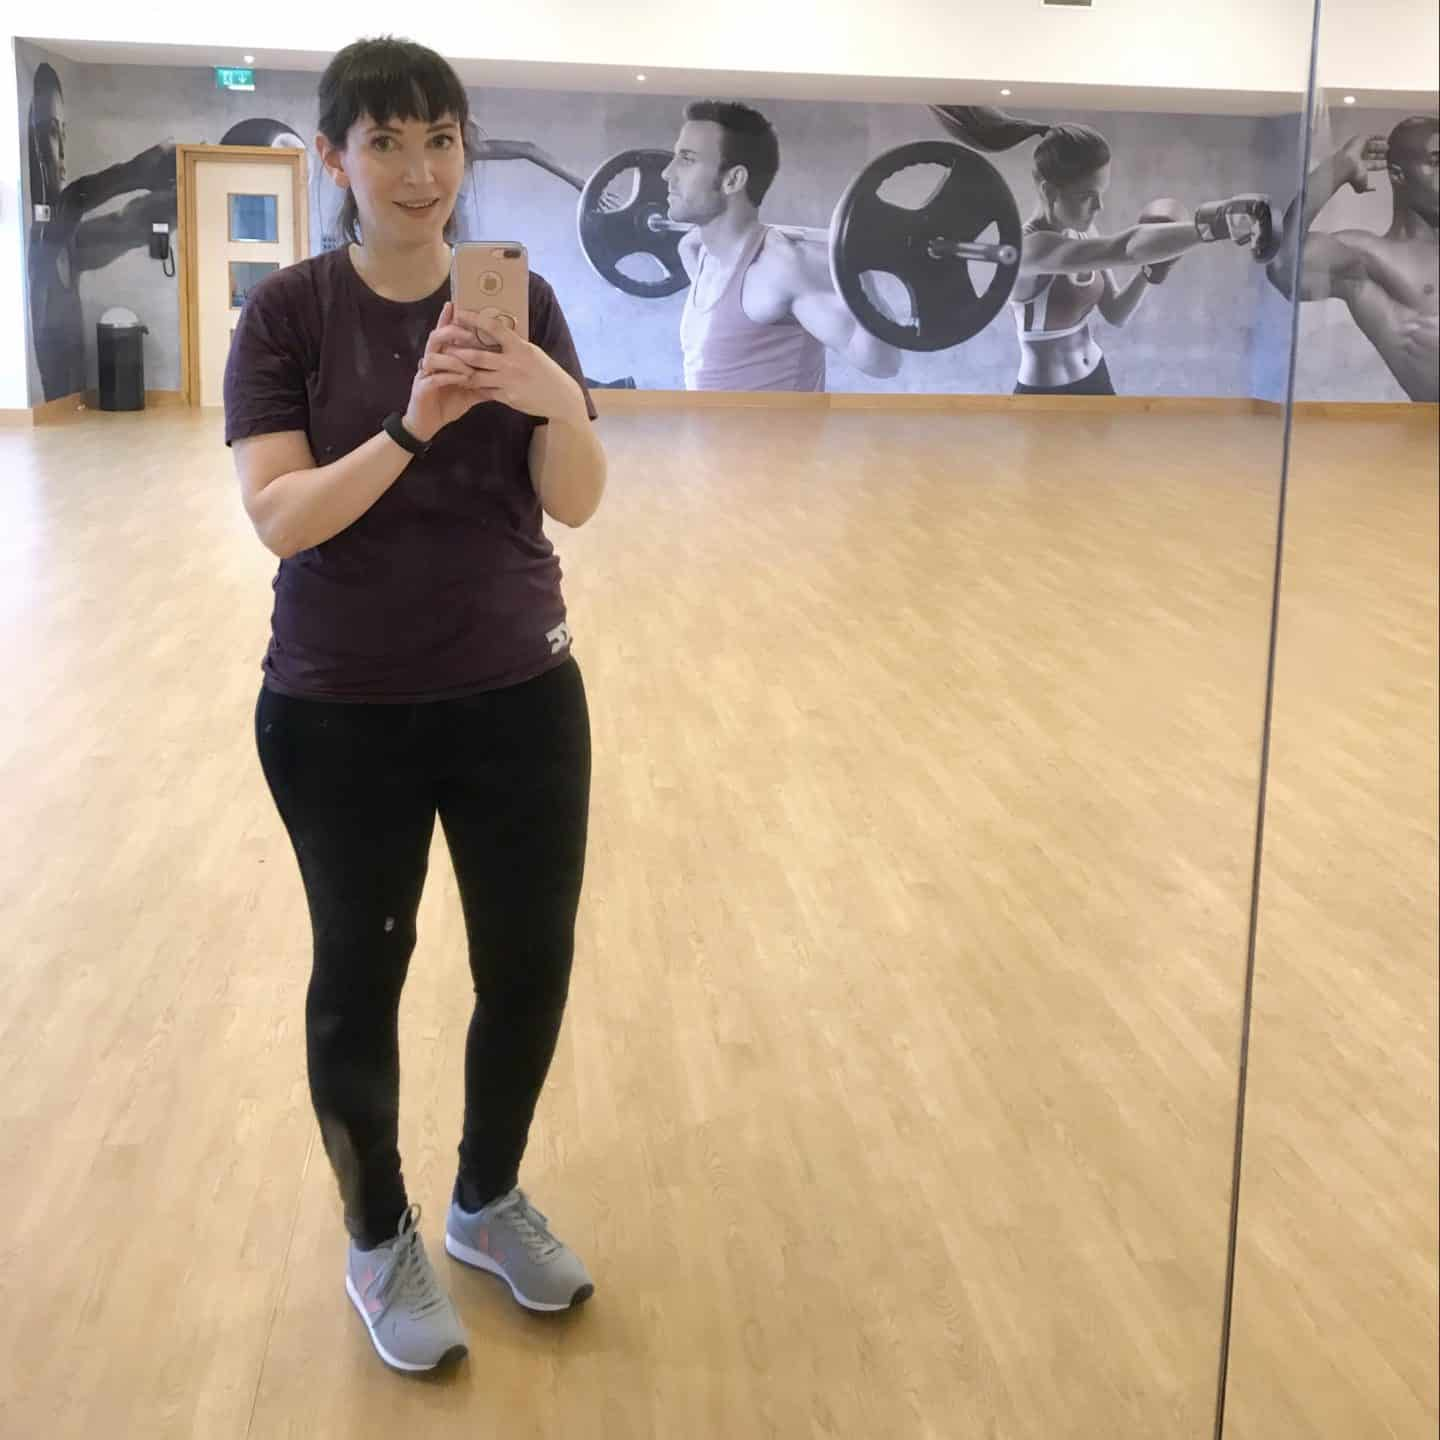 Post Body Jam Selfie: exercise with David Lloyd